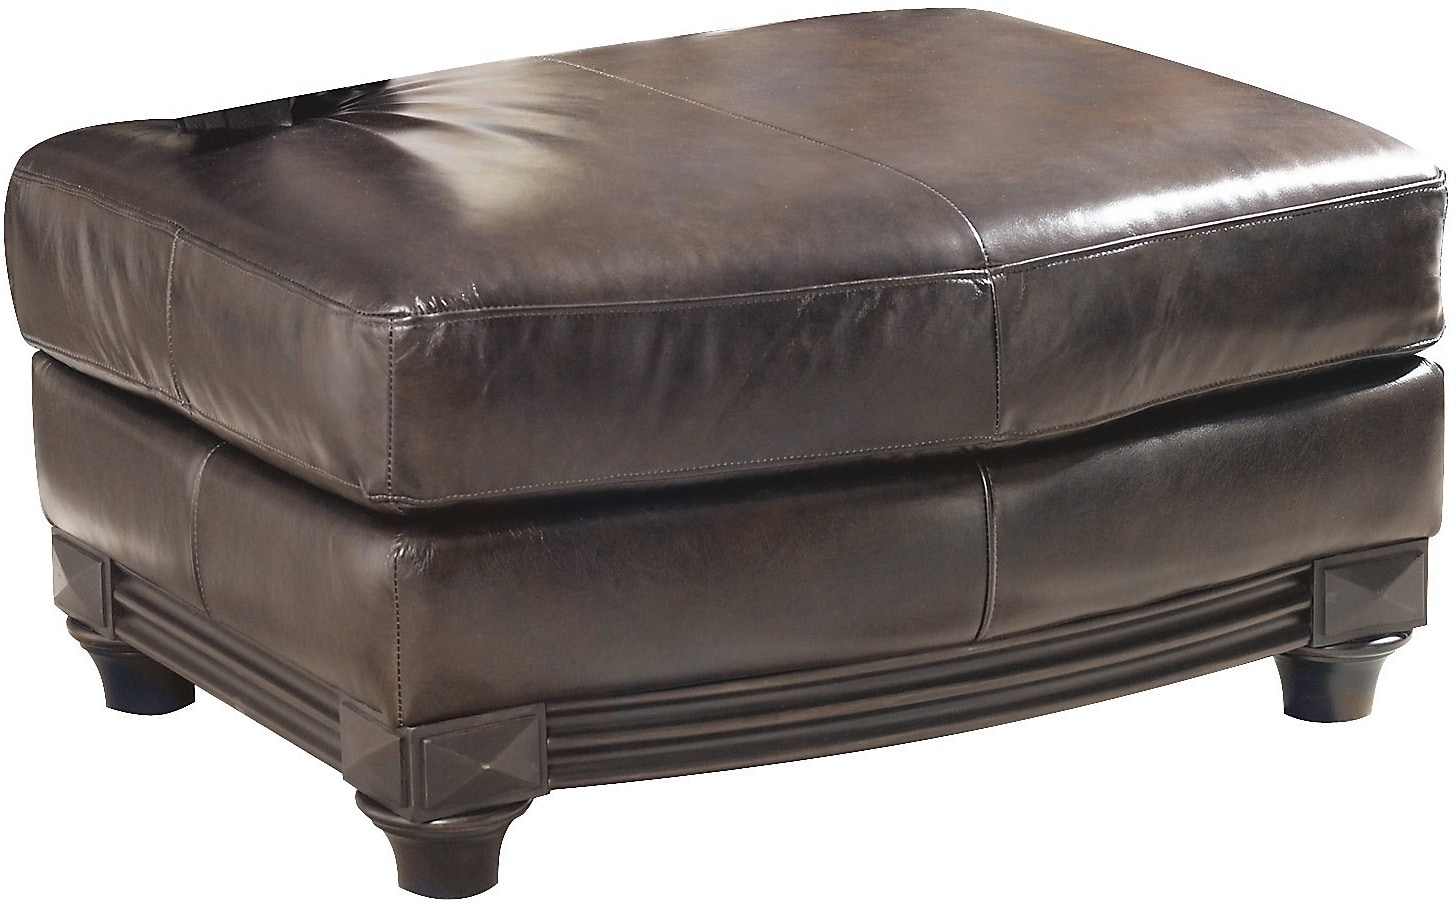 Prestige 100% Genuine Leather Ottoman – Brown